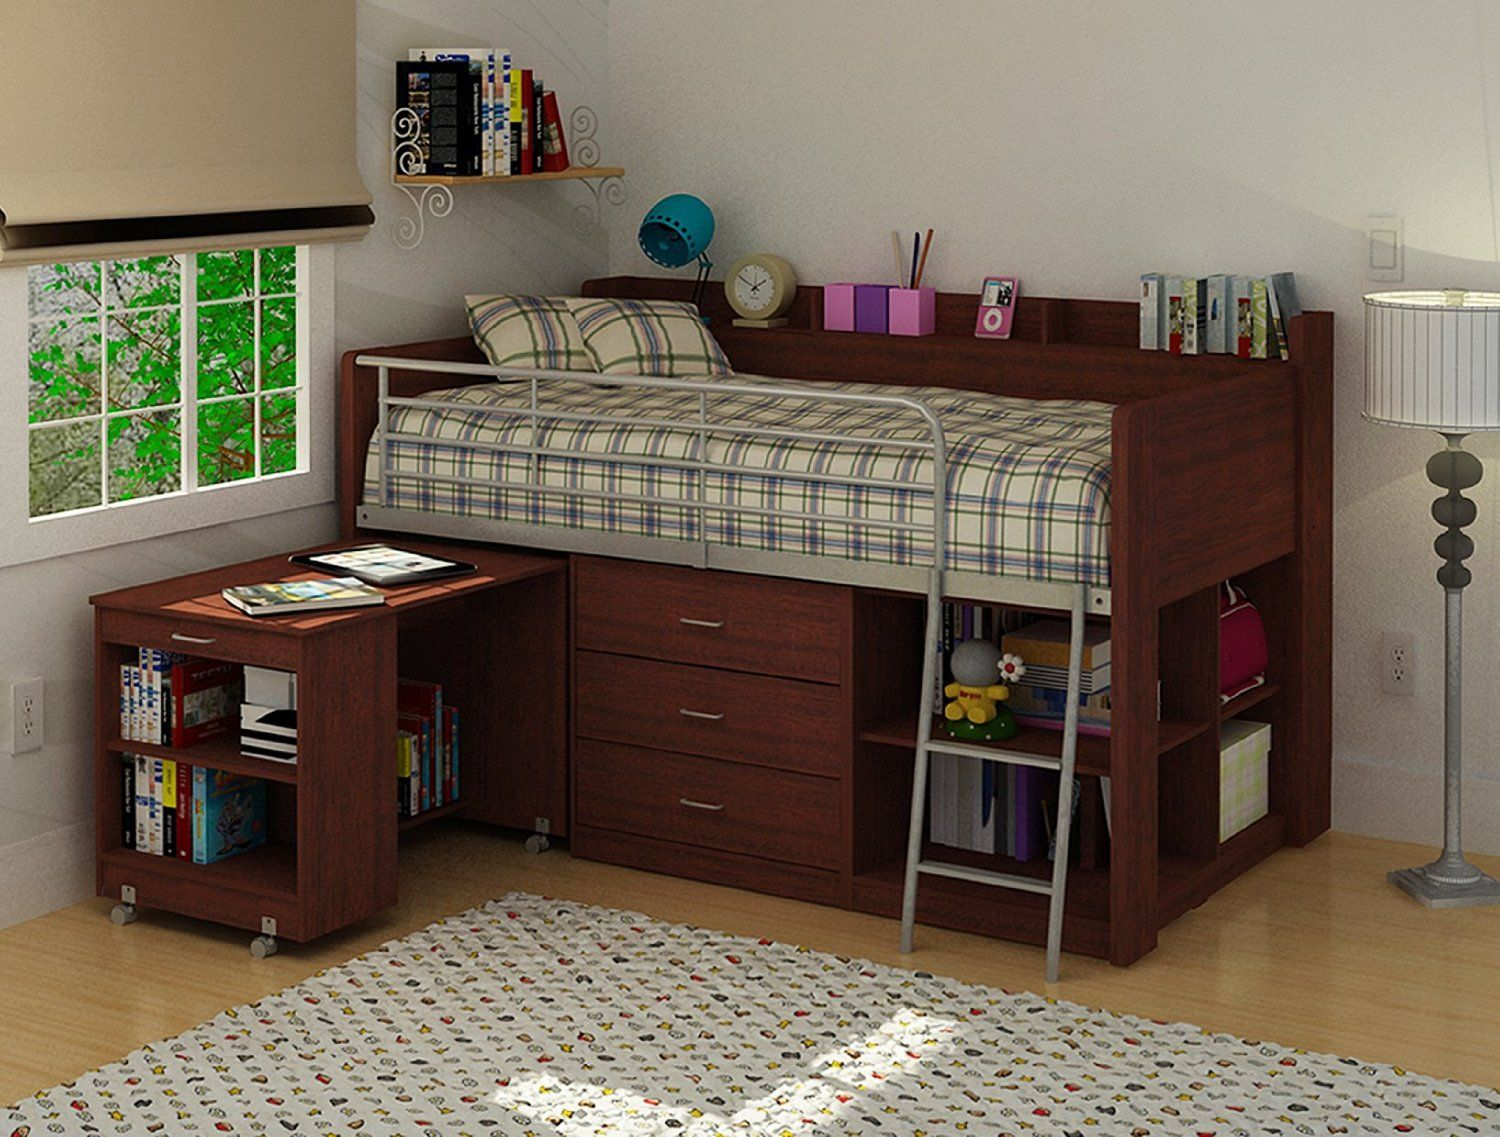 Kids bunk beds with desks valuable 17 kids loft beds with desk underneath cool low wooden kids - Kids bed with drawers underneath ...